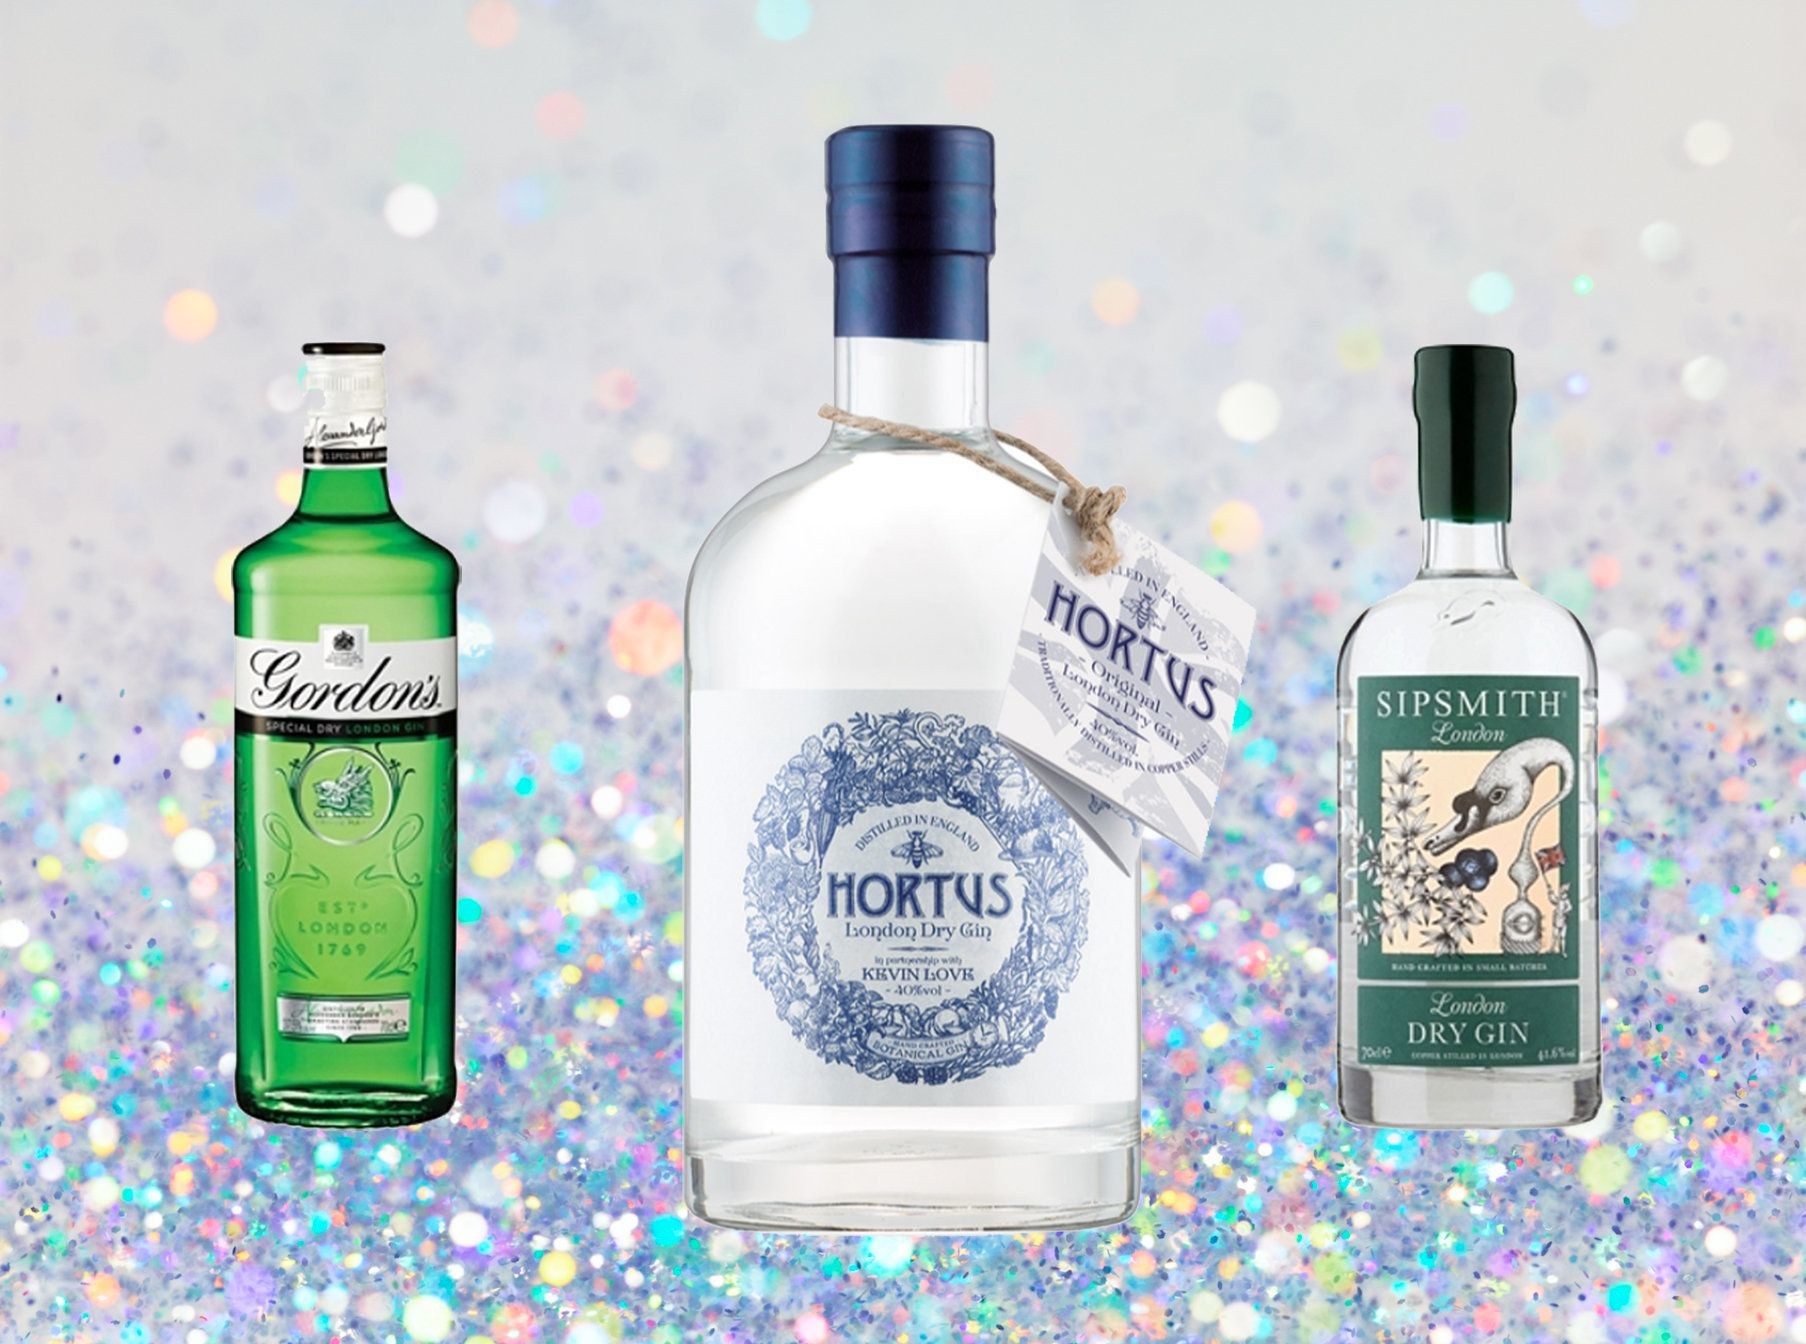 Lidl's Gin Beats Gordon's And Sipsmith In Blind Taste